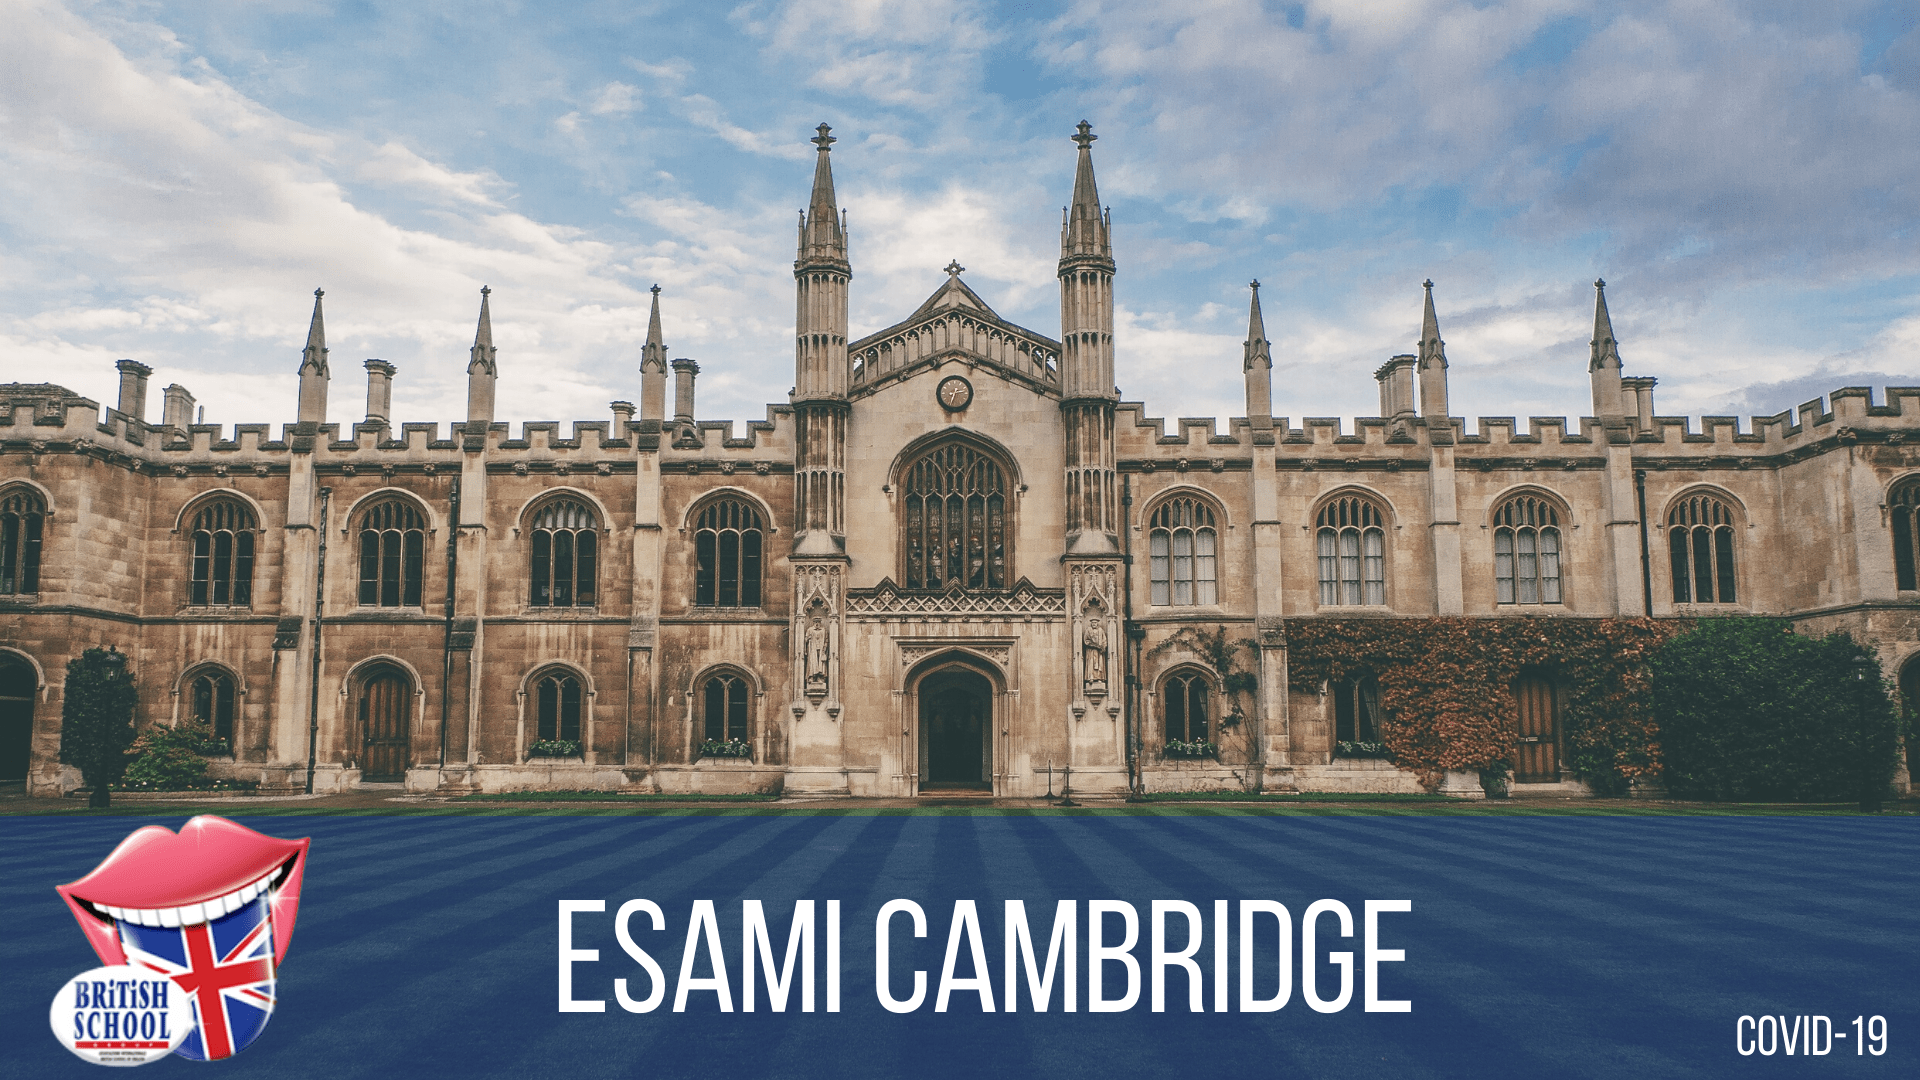 Esami Cambridge